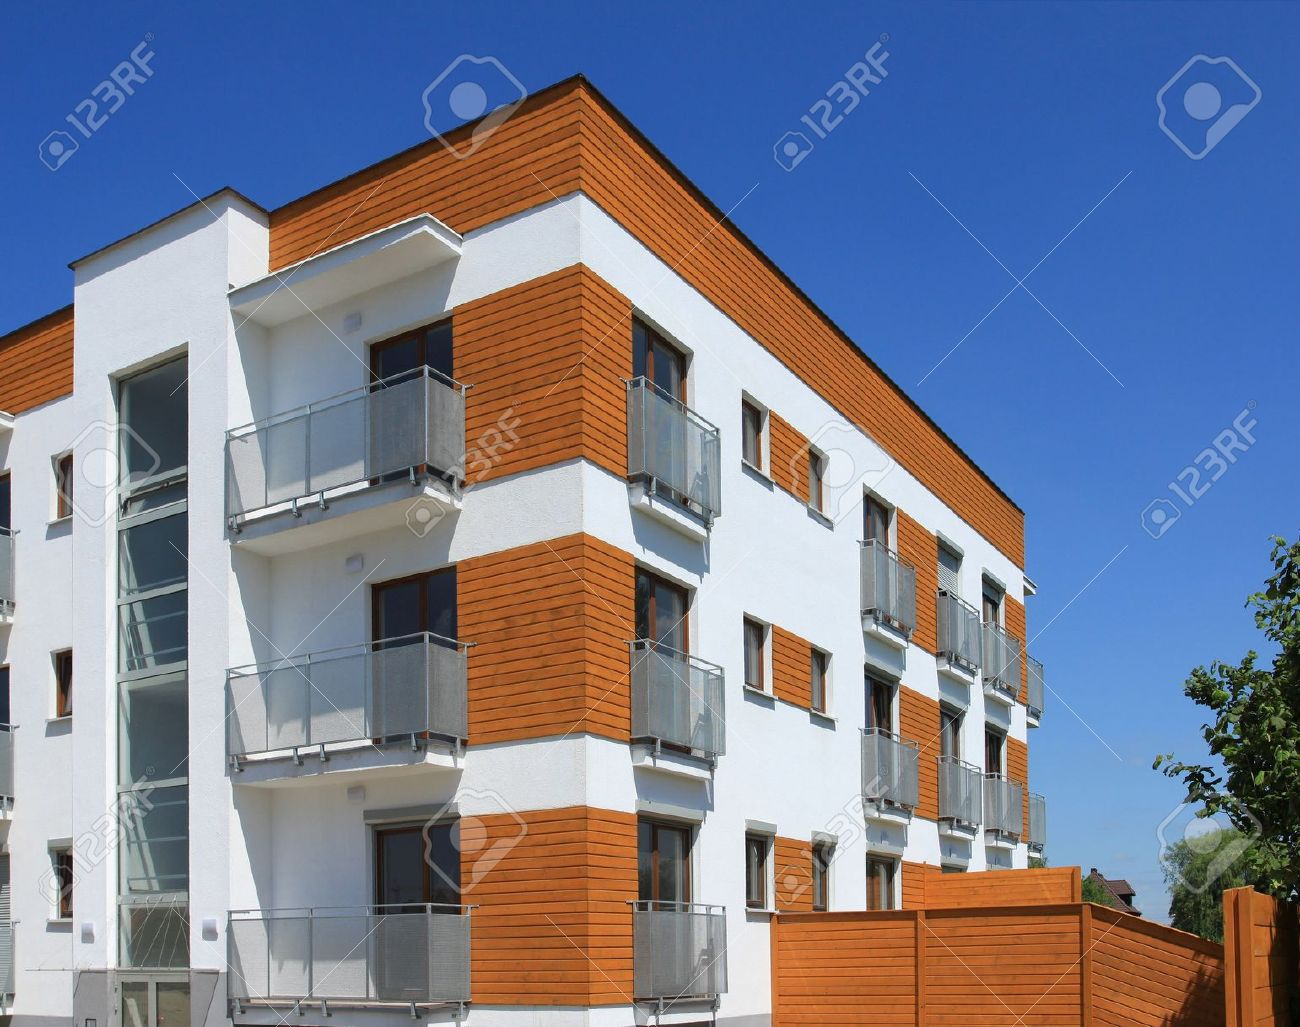 Apartment Buildings Images Stock Pictures Royalty Free